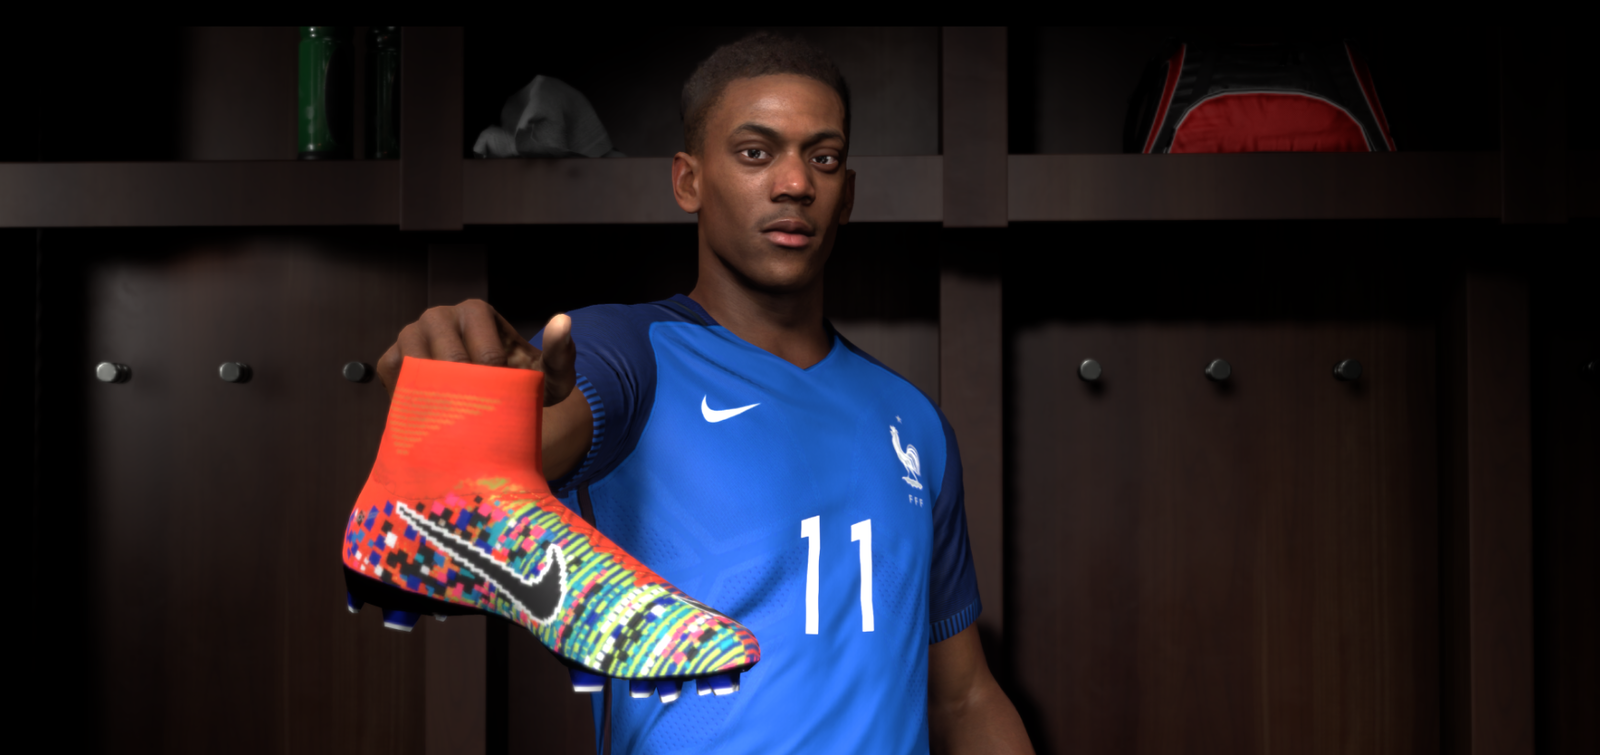 best website a88bd 3d44b Mercurial X EA SPORTS - Nike News